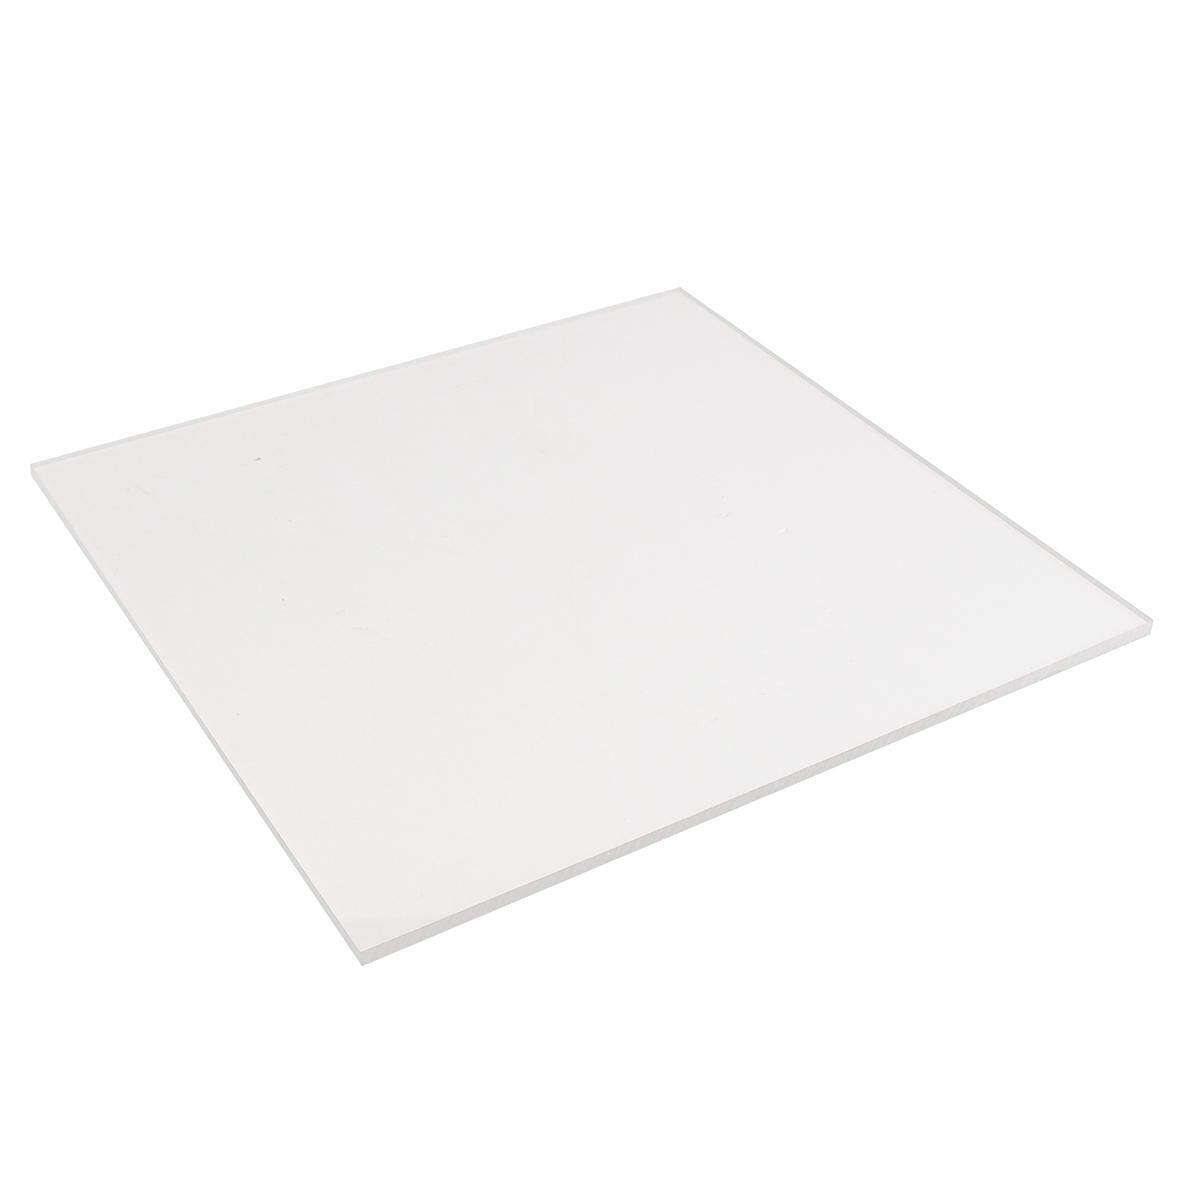 New 10mm 500x500mm Acrylic Perspex Sheet Cut to Size Panel Plastic Satin Gloss